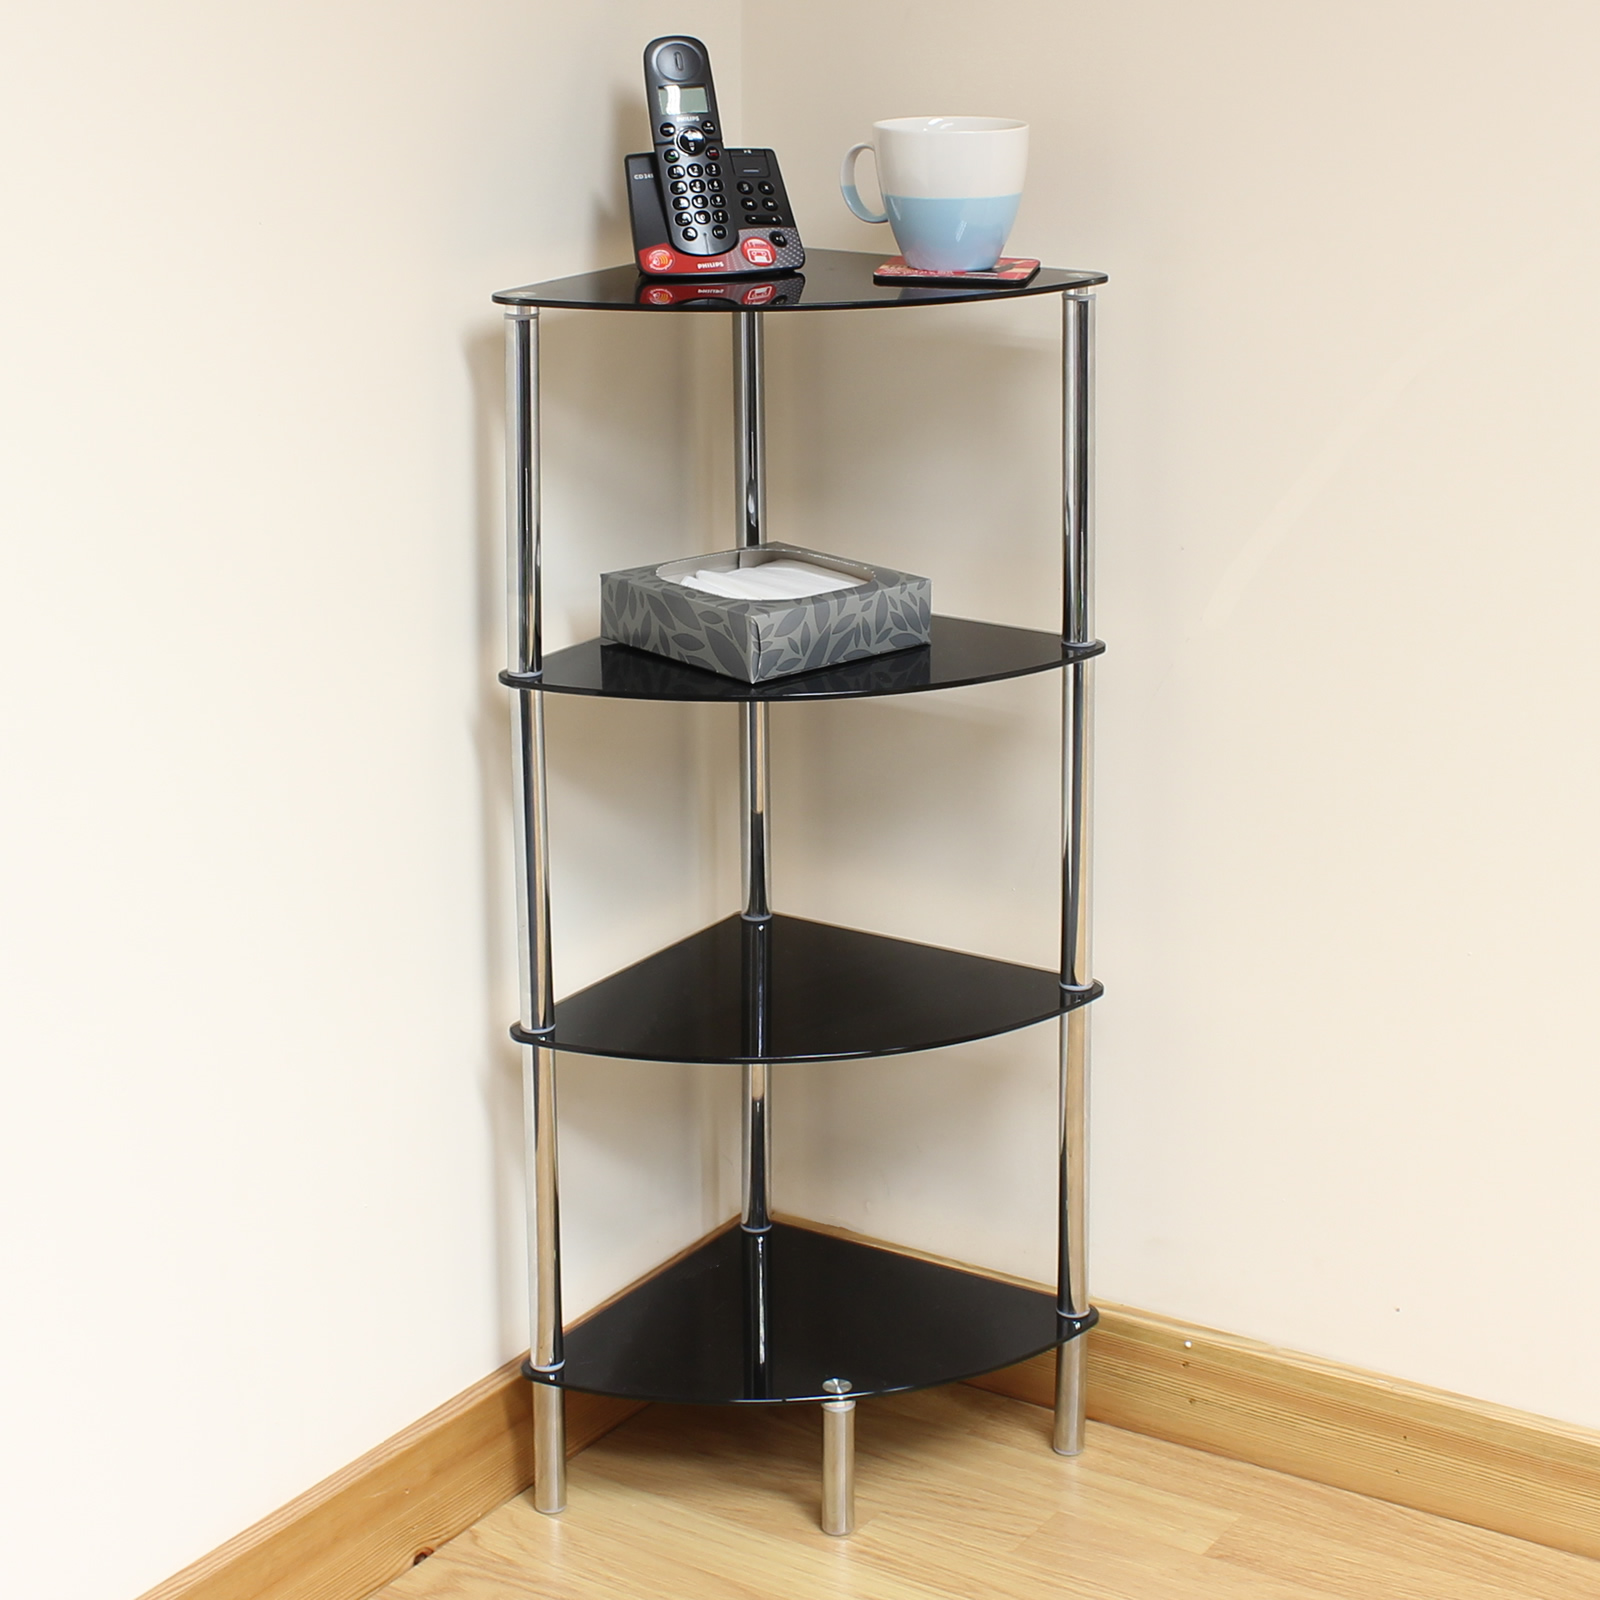 #956B36 Hartleys 4 Tier Black Glass Corner Side/End Table Shelf  with 1600x1600 px of Brand New Glass Corner Display Units Uk 16001600 pic @ avoidforclosure.info